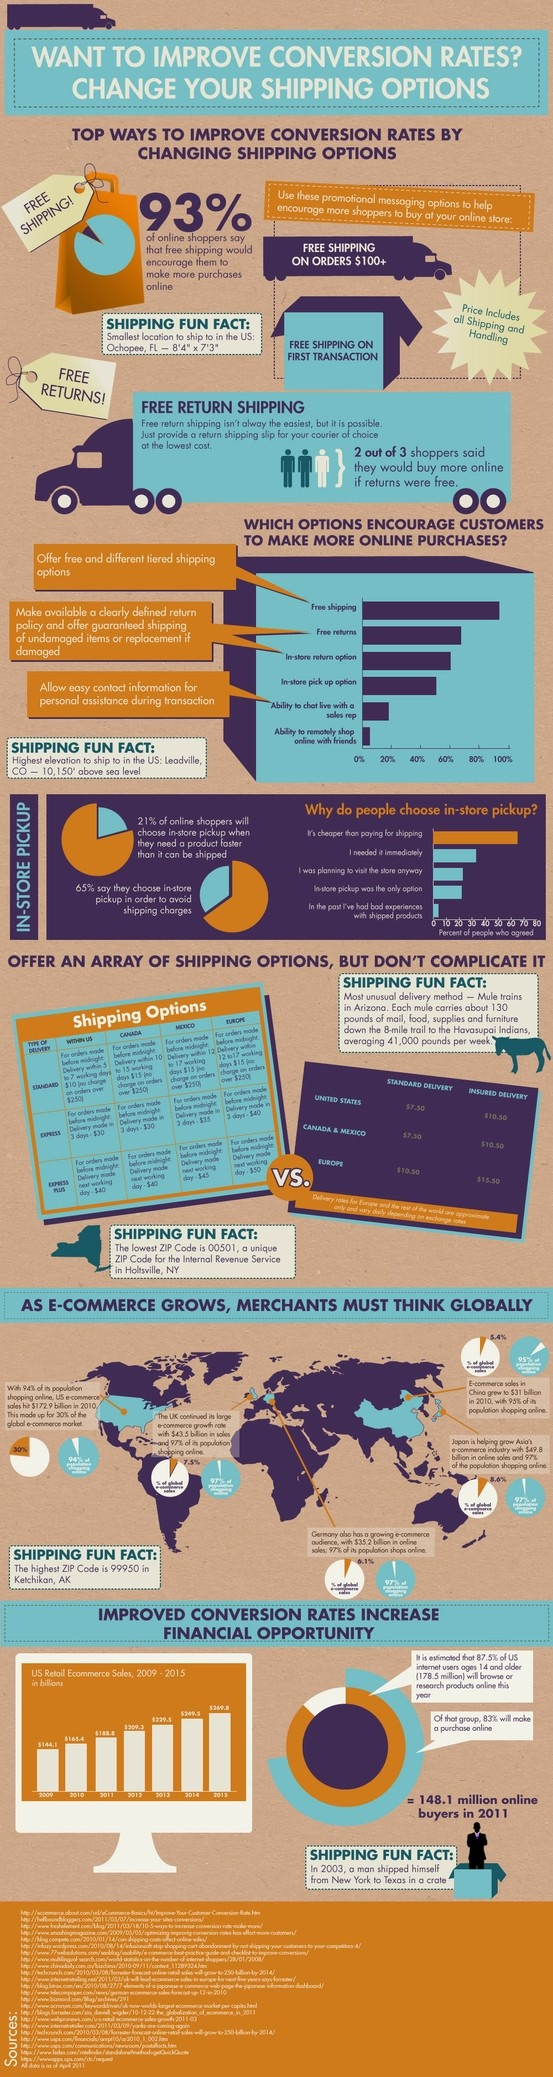 Improve Conversion Rates by Changing Your Shipping Options [Infographic]